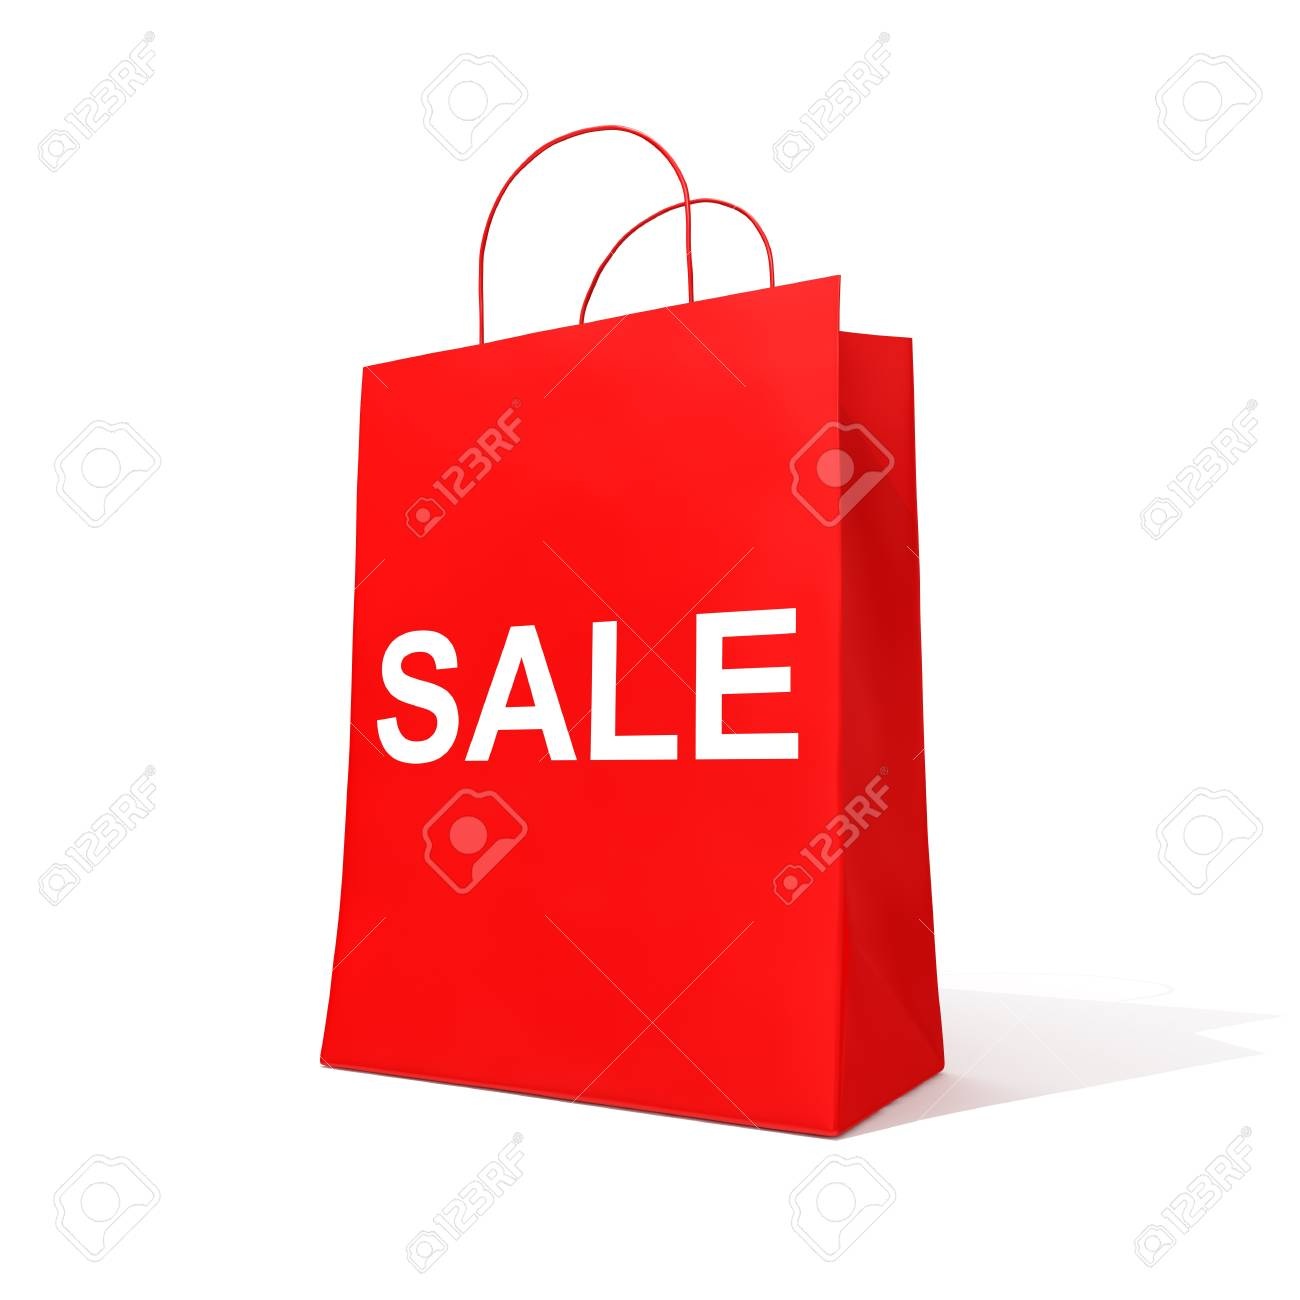 Blank shopping red bag for sale Stock Photo - 12389138